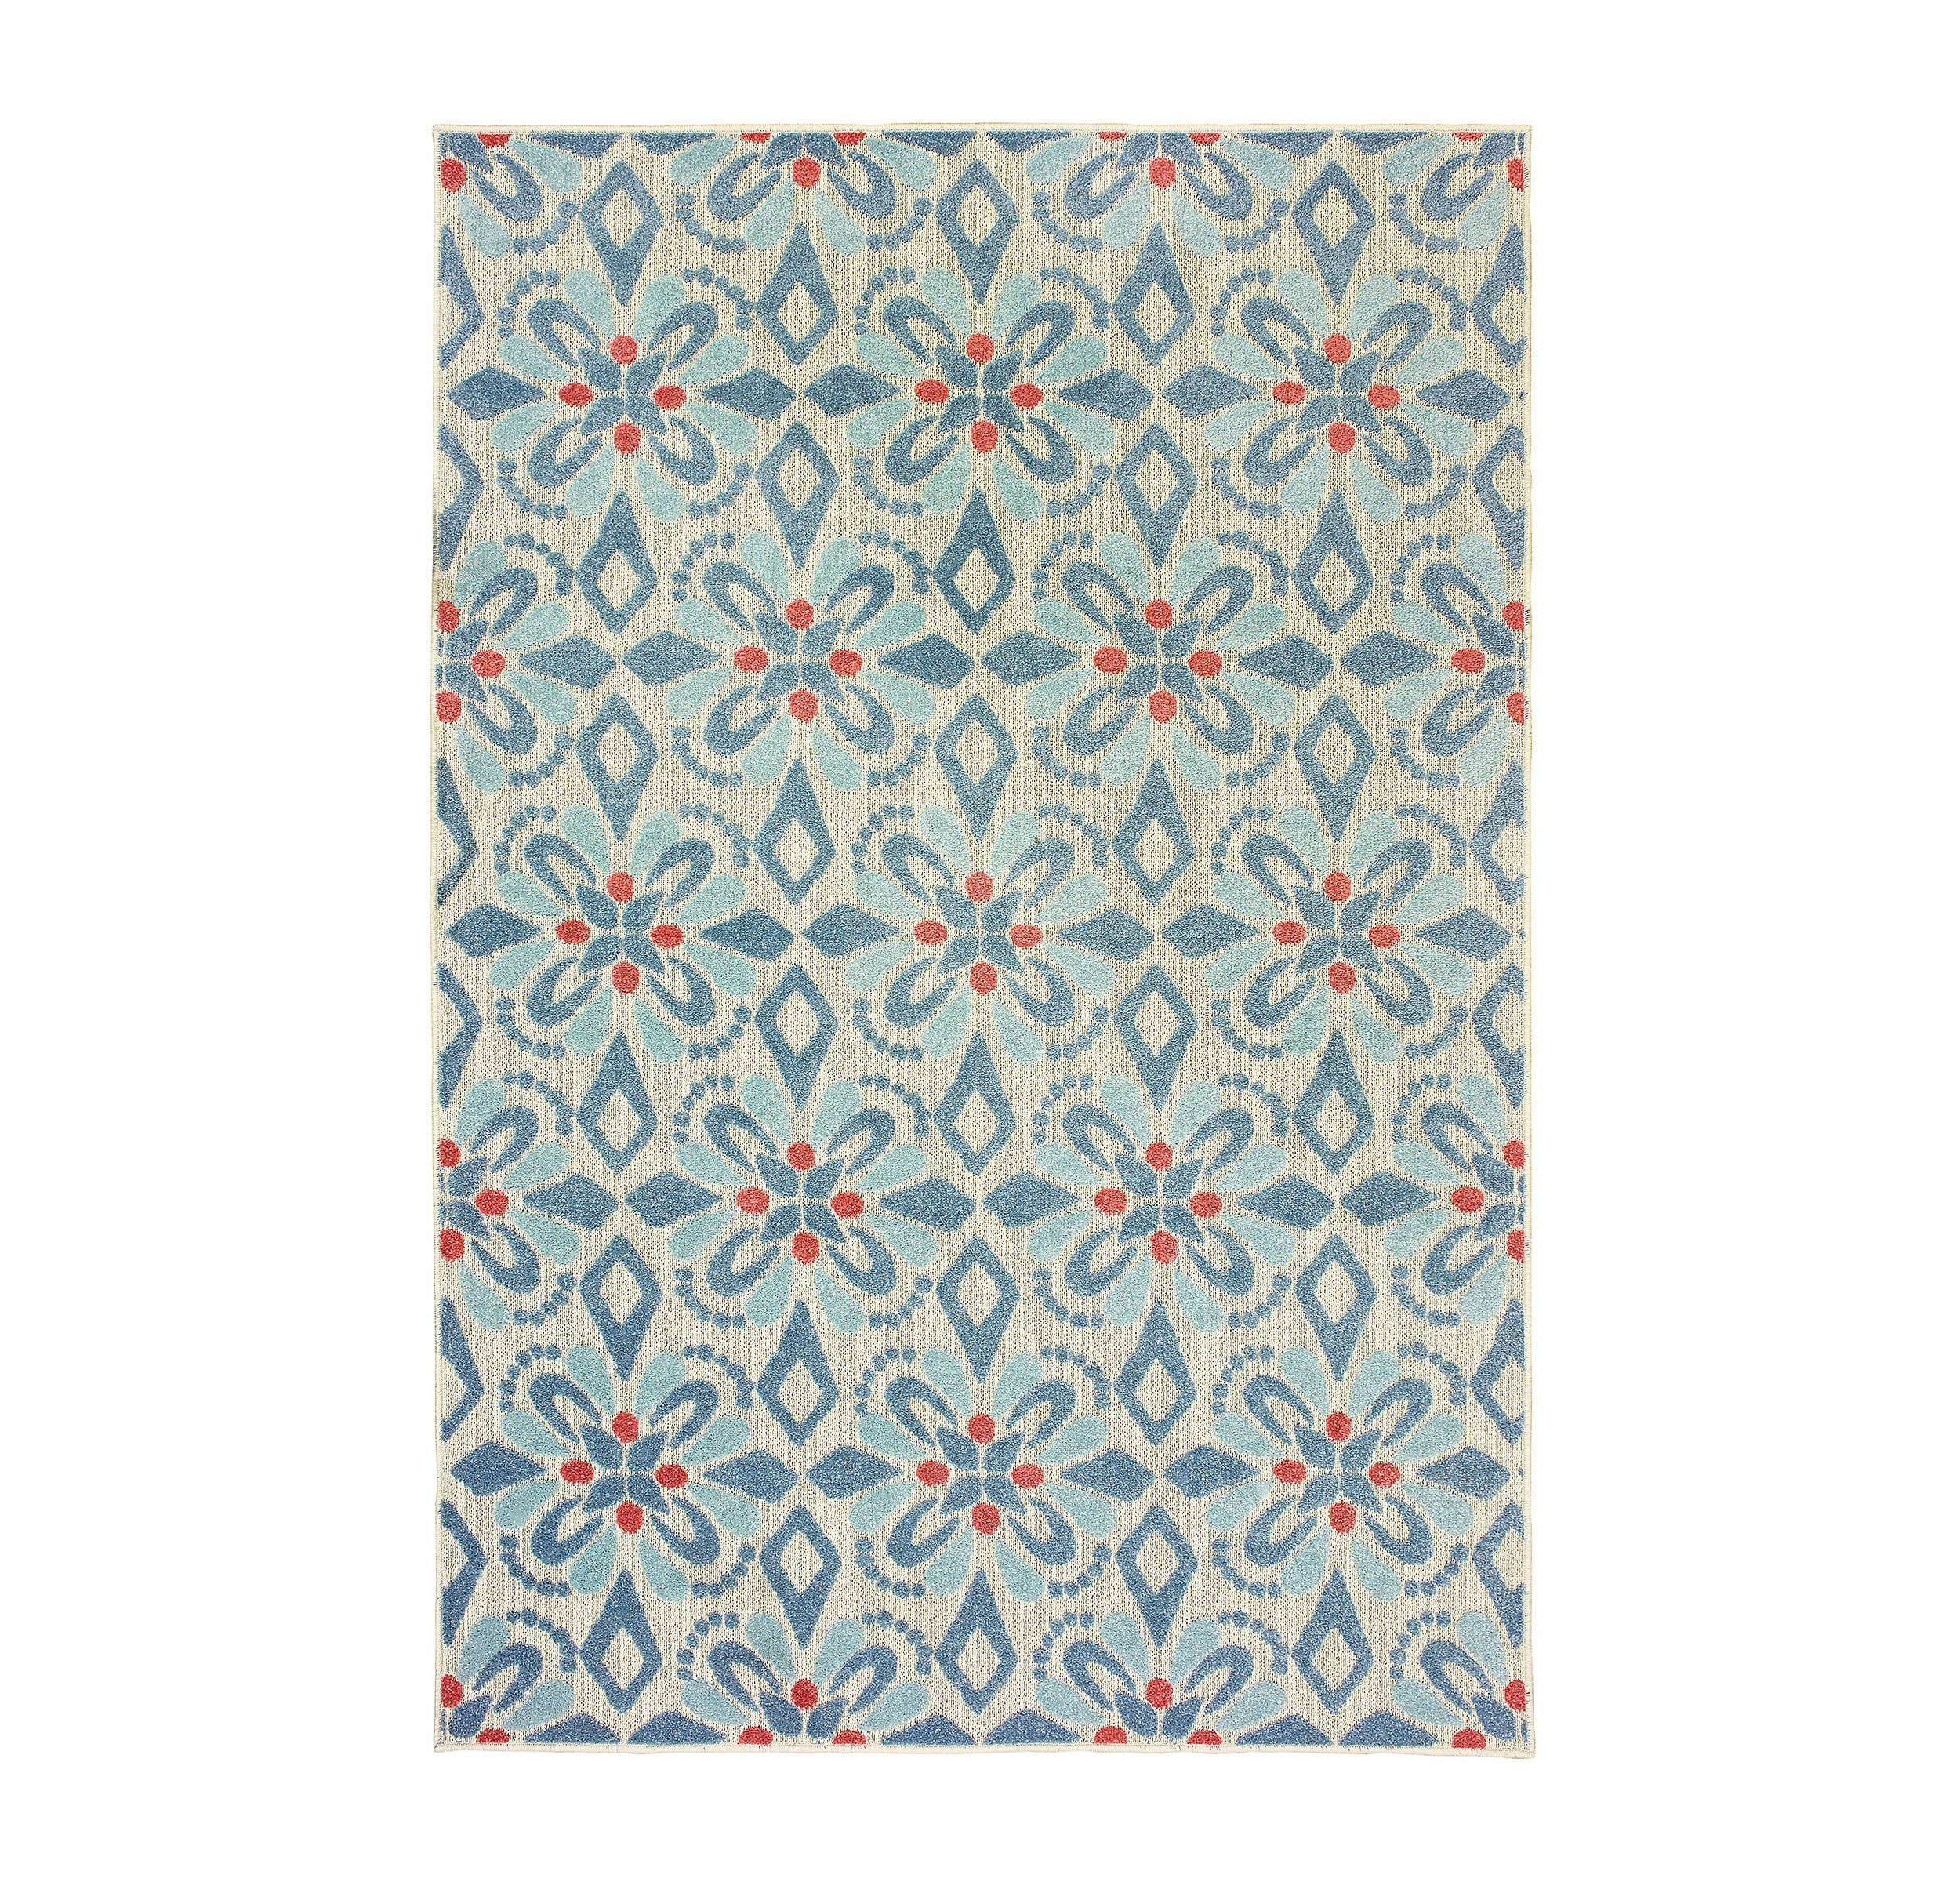 Blue Castleberry Outdoor Area Rug 5x7 In 2020 Indoor Outdoor